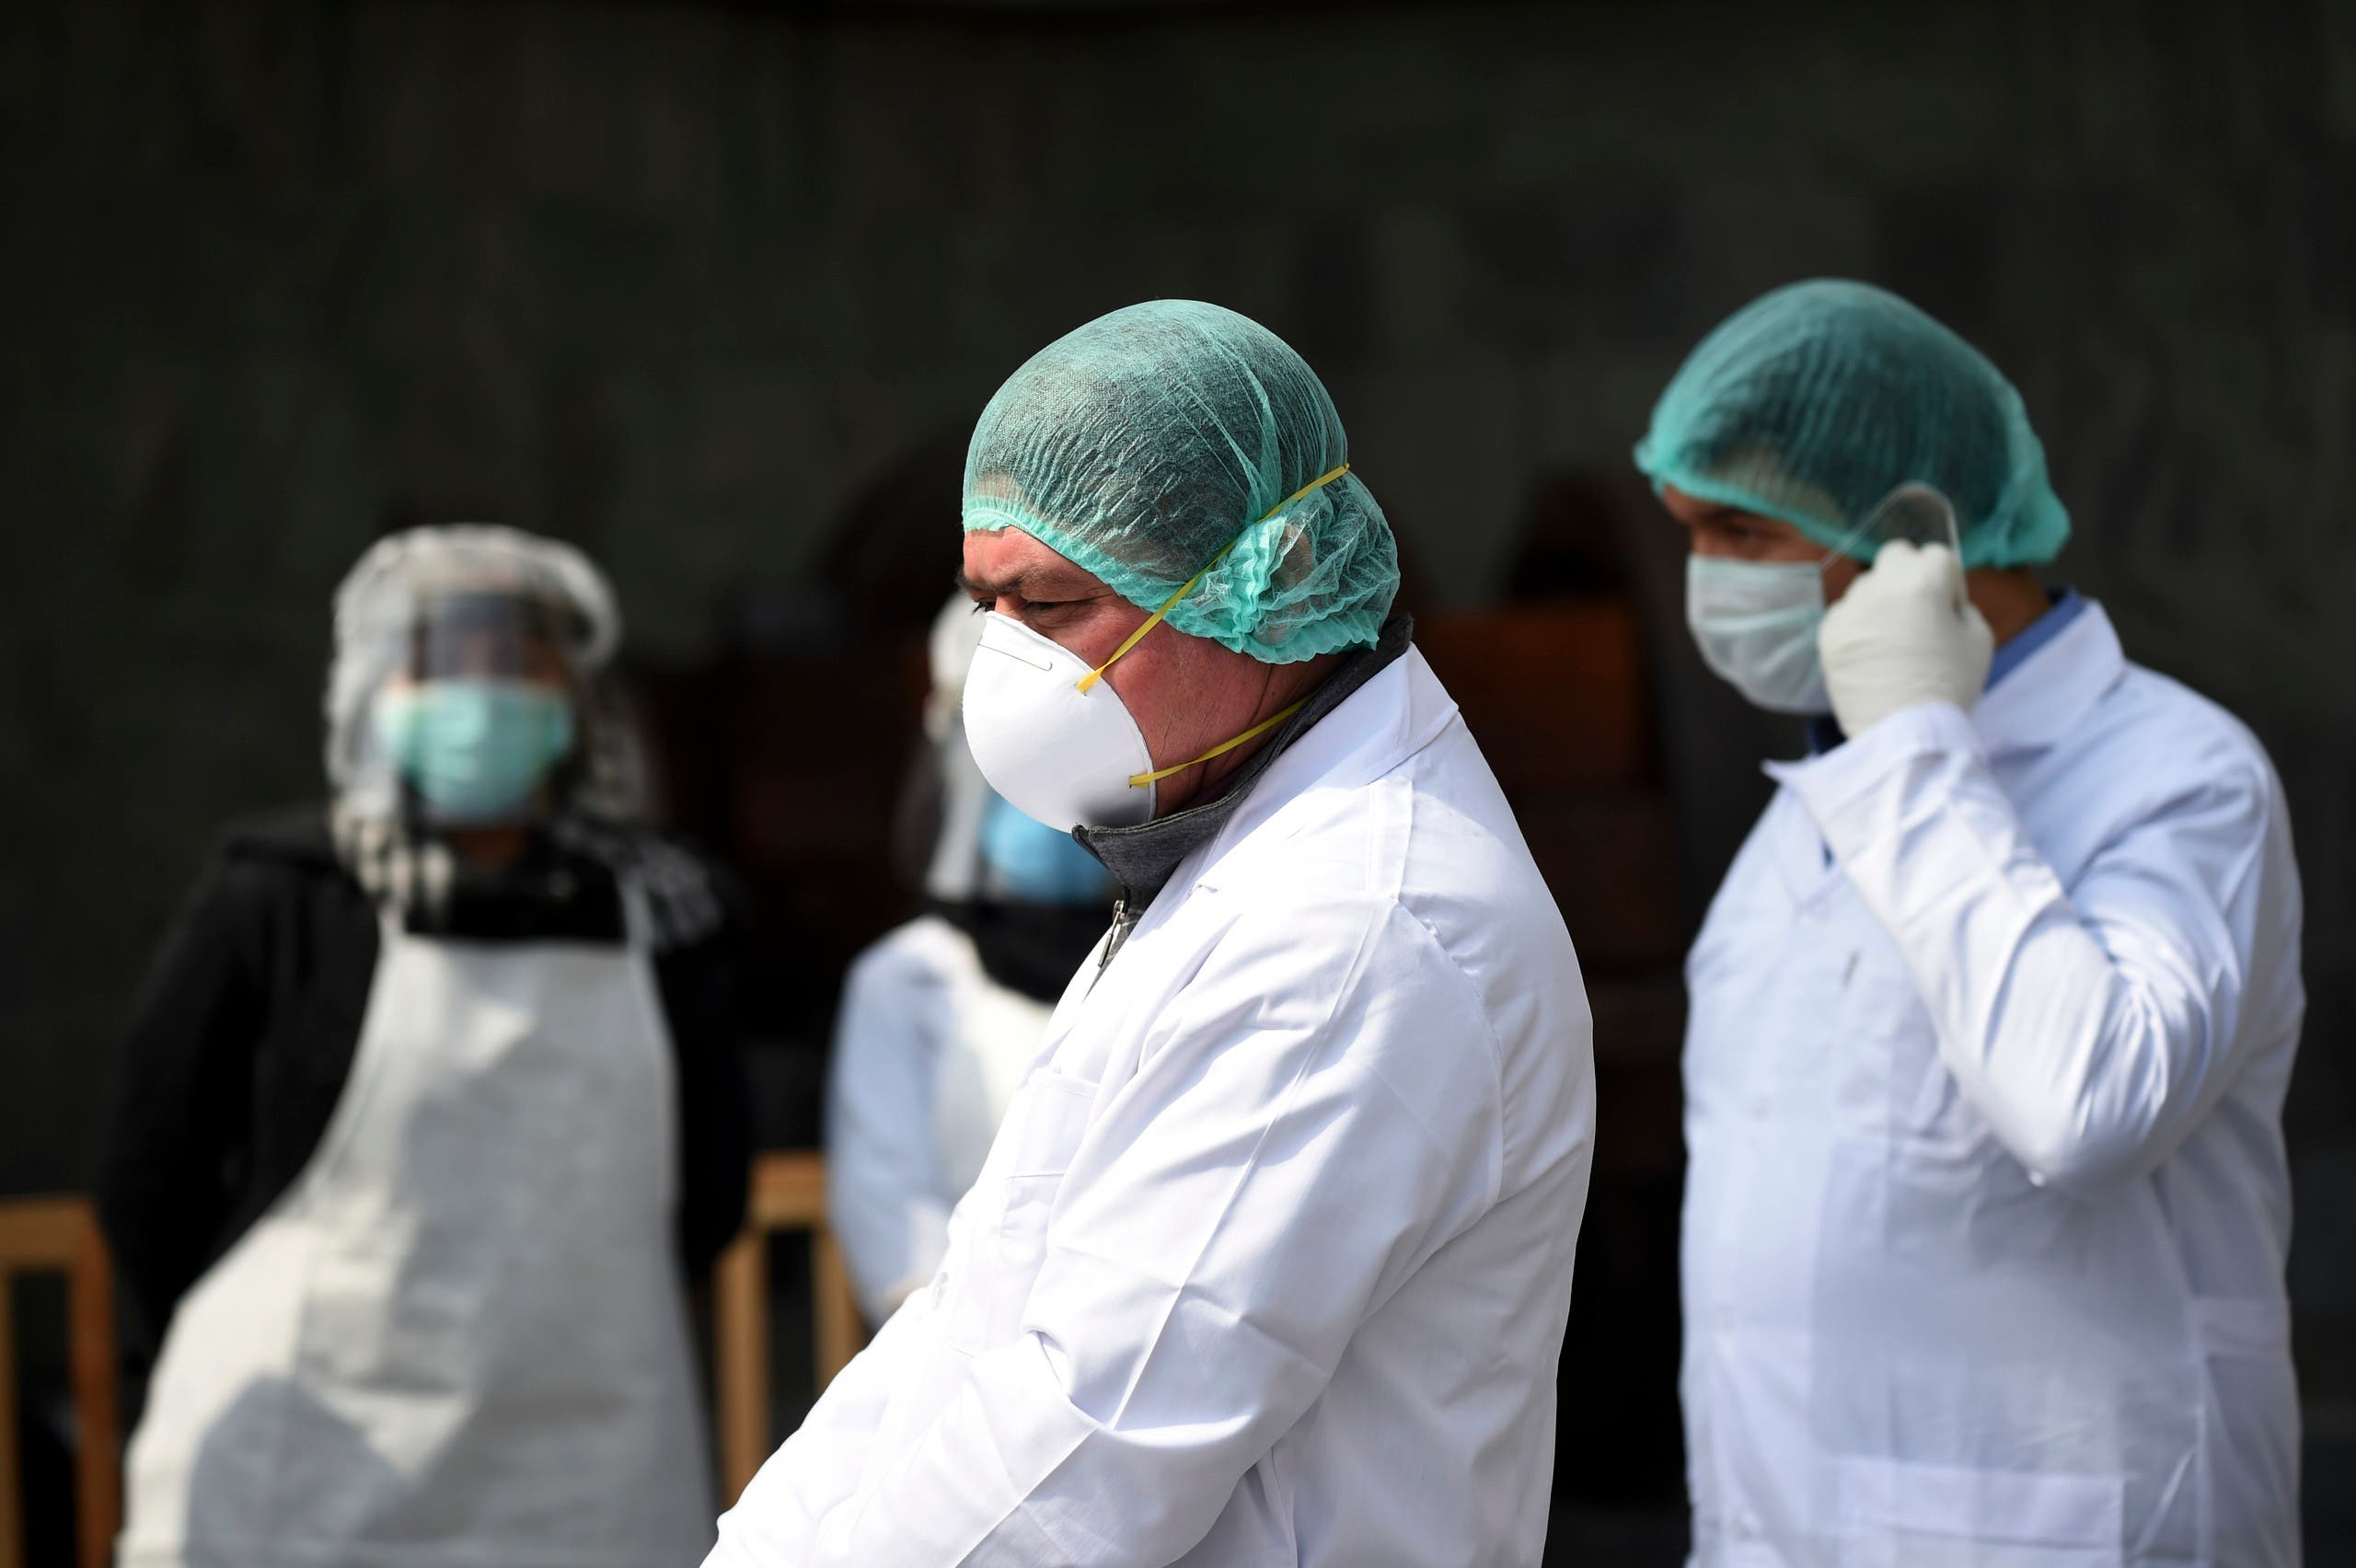 Afghan health services staff wearing protective gear, as a preventive measure against the spread of the COVID-19 coronavirus, wait to check the body temperature of guests ahead of the start of Afghanistan President Ashraf Ghani's swearing-in inauguration ceremony, at the Presidential Palace in Kabul on March 9, 2020.